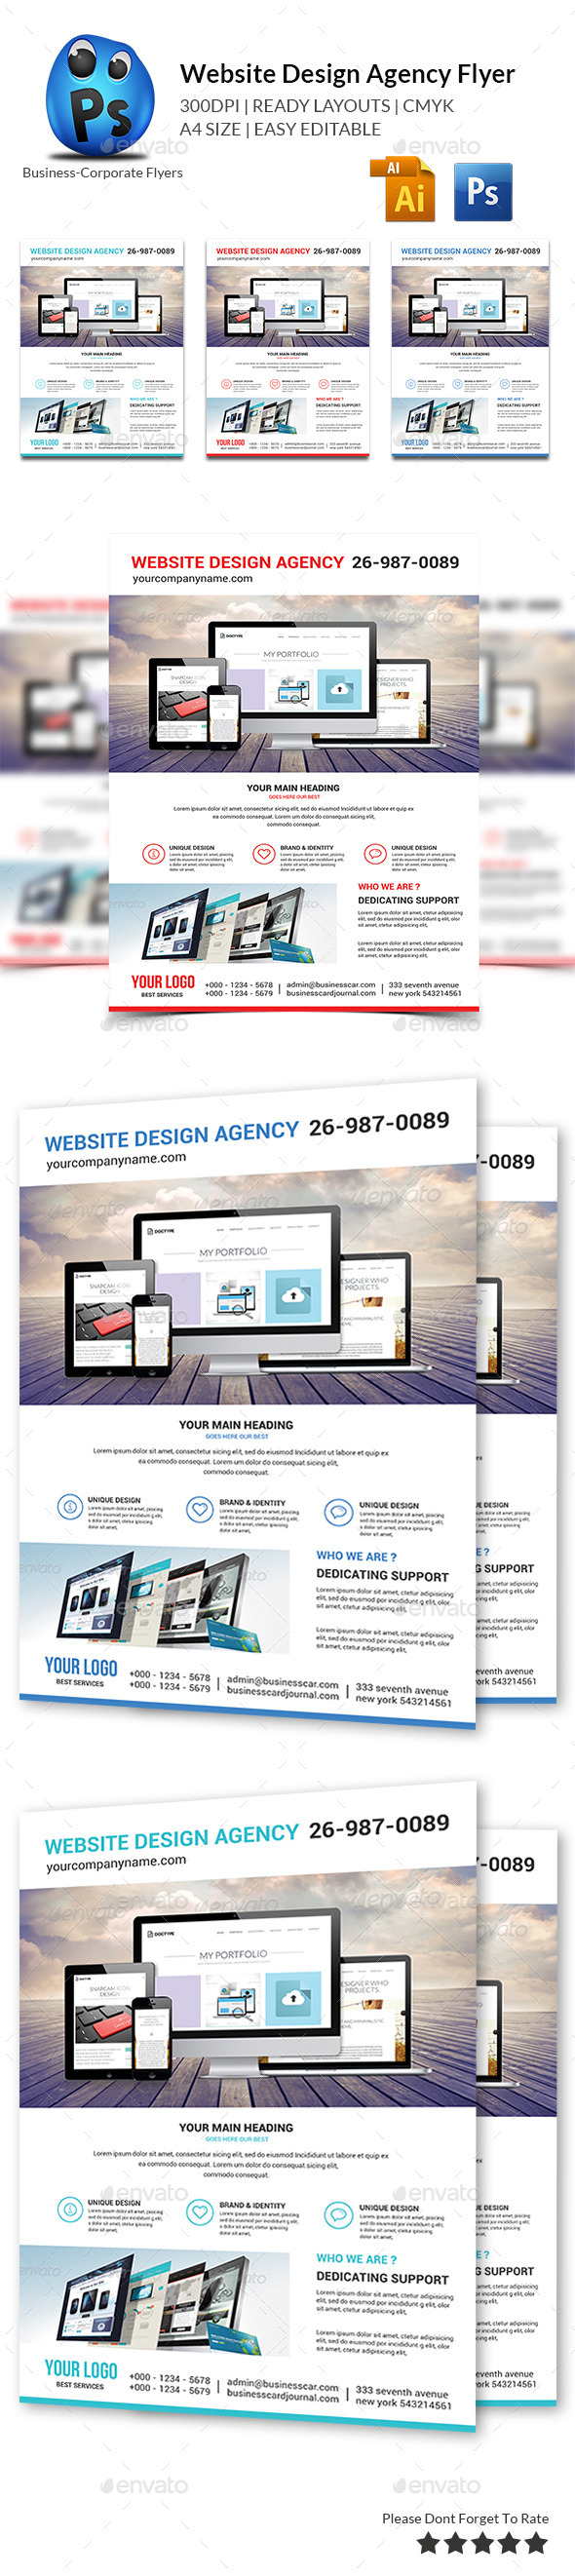 Website Design Agency Flyer - Flyers Print Templates